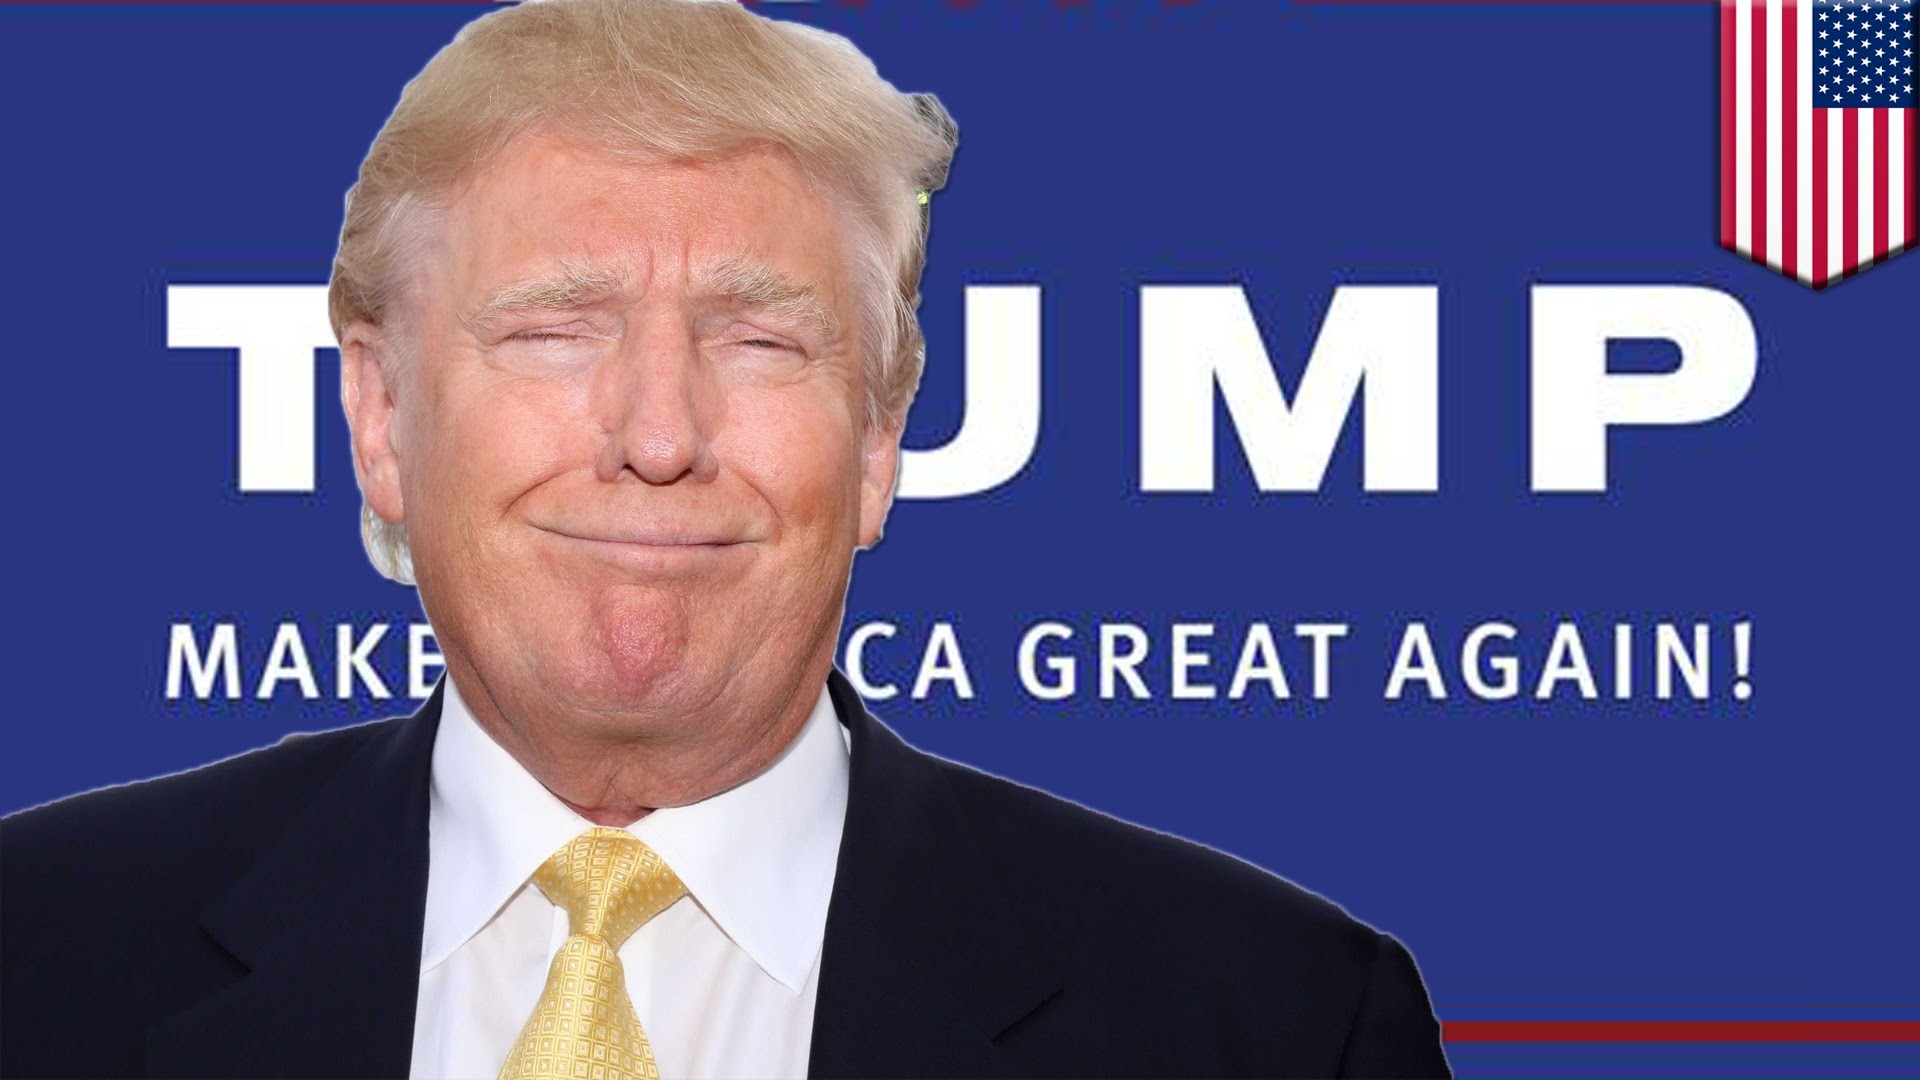 Donald Trump President 2016: Trump should be POTUS because he's the  awesomest – YouTube